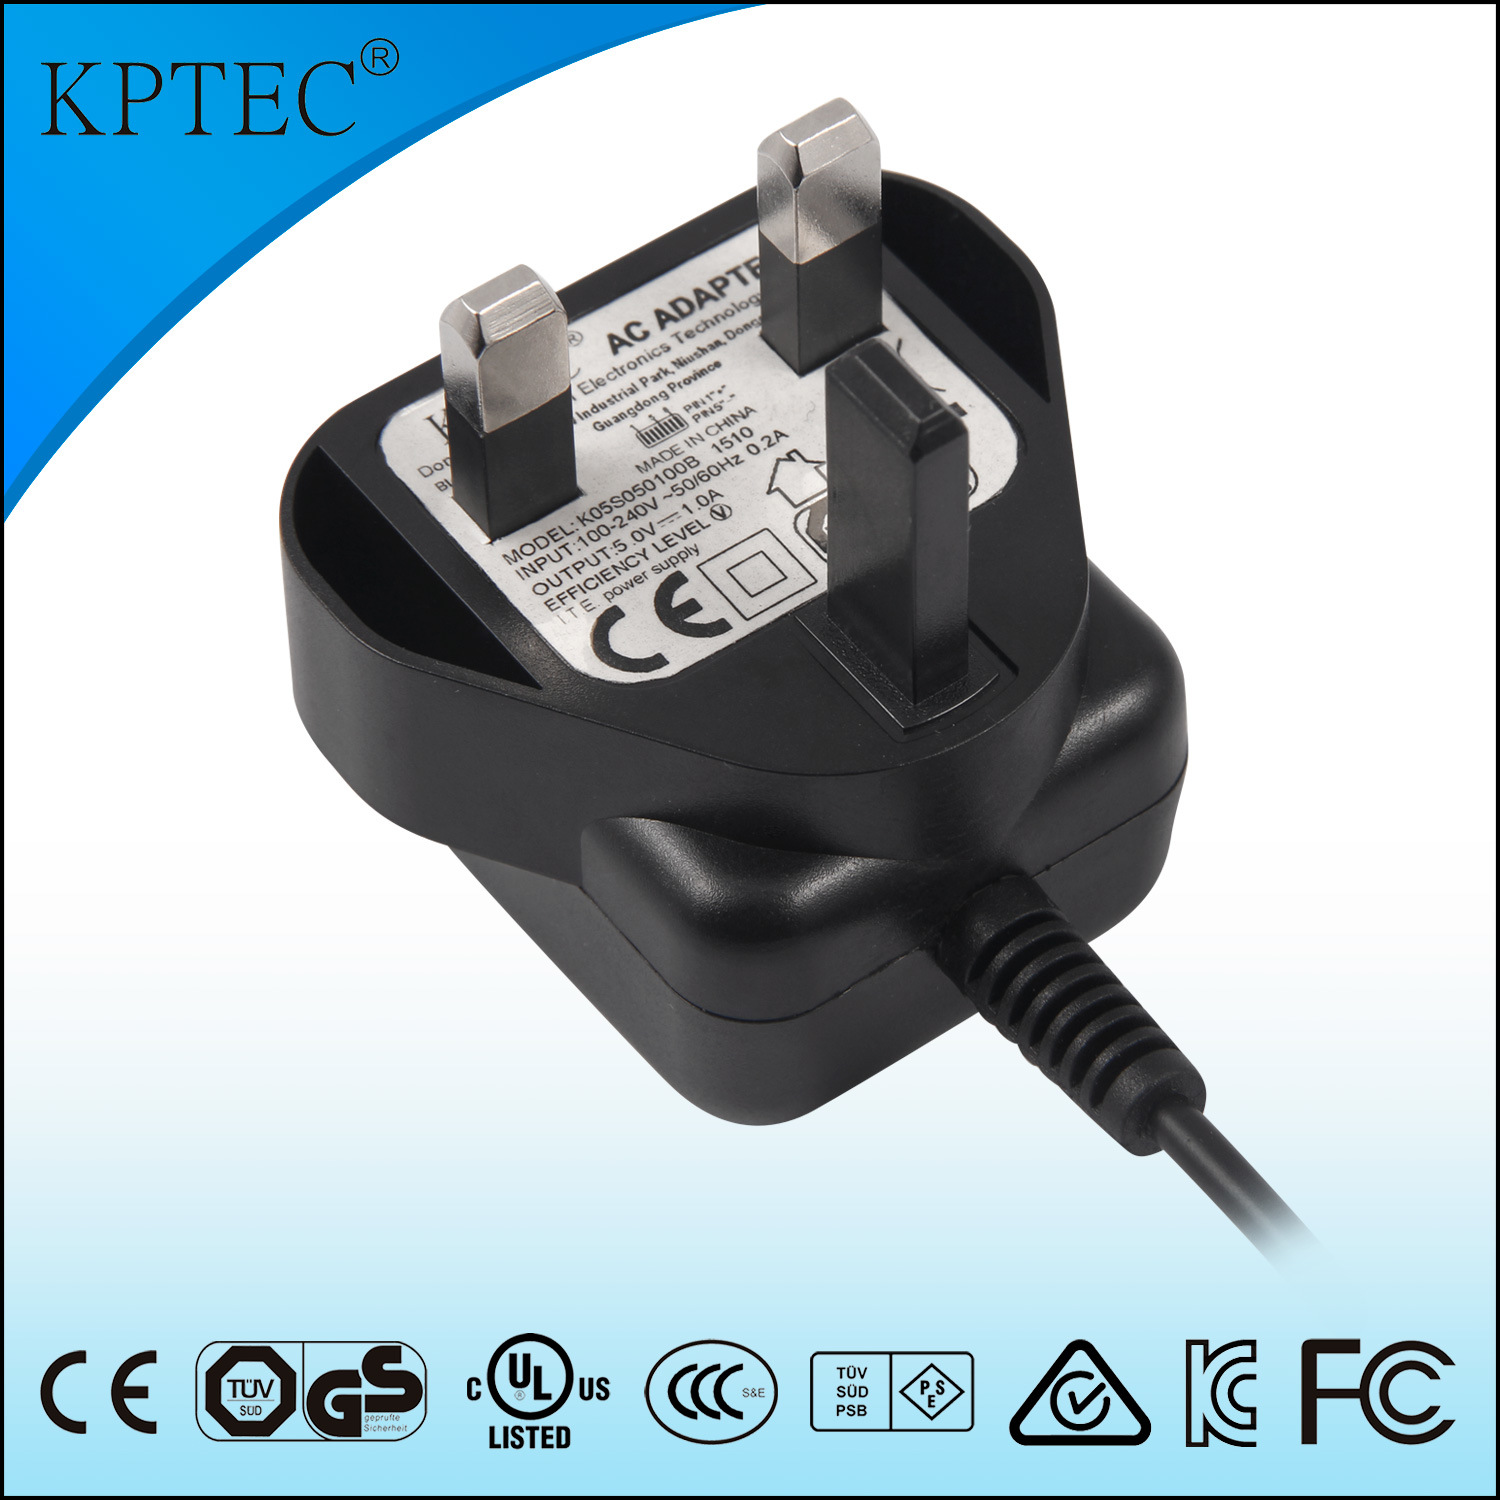 AC/DC Adapter with Ce Certificate 5V 0.4A